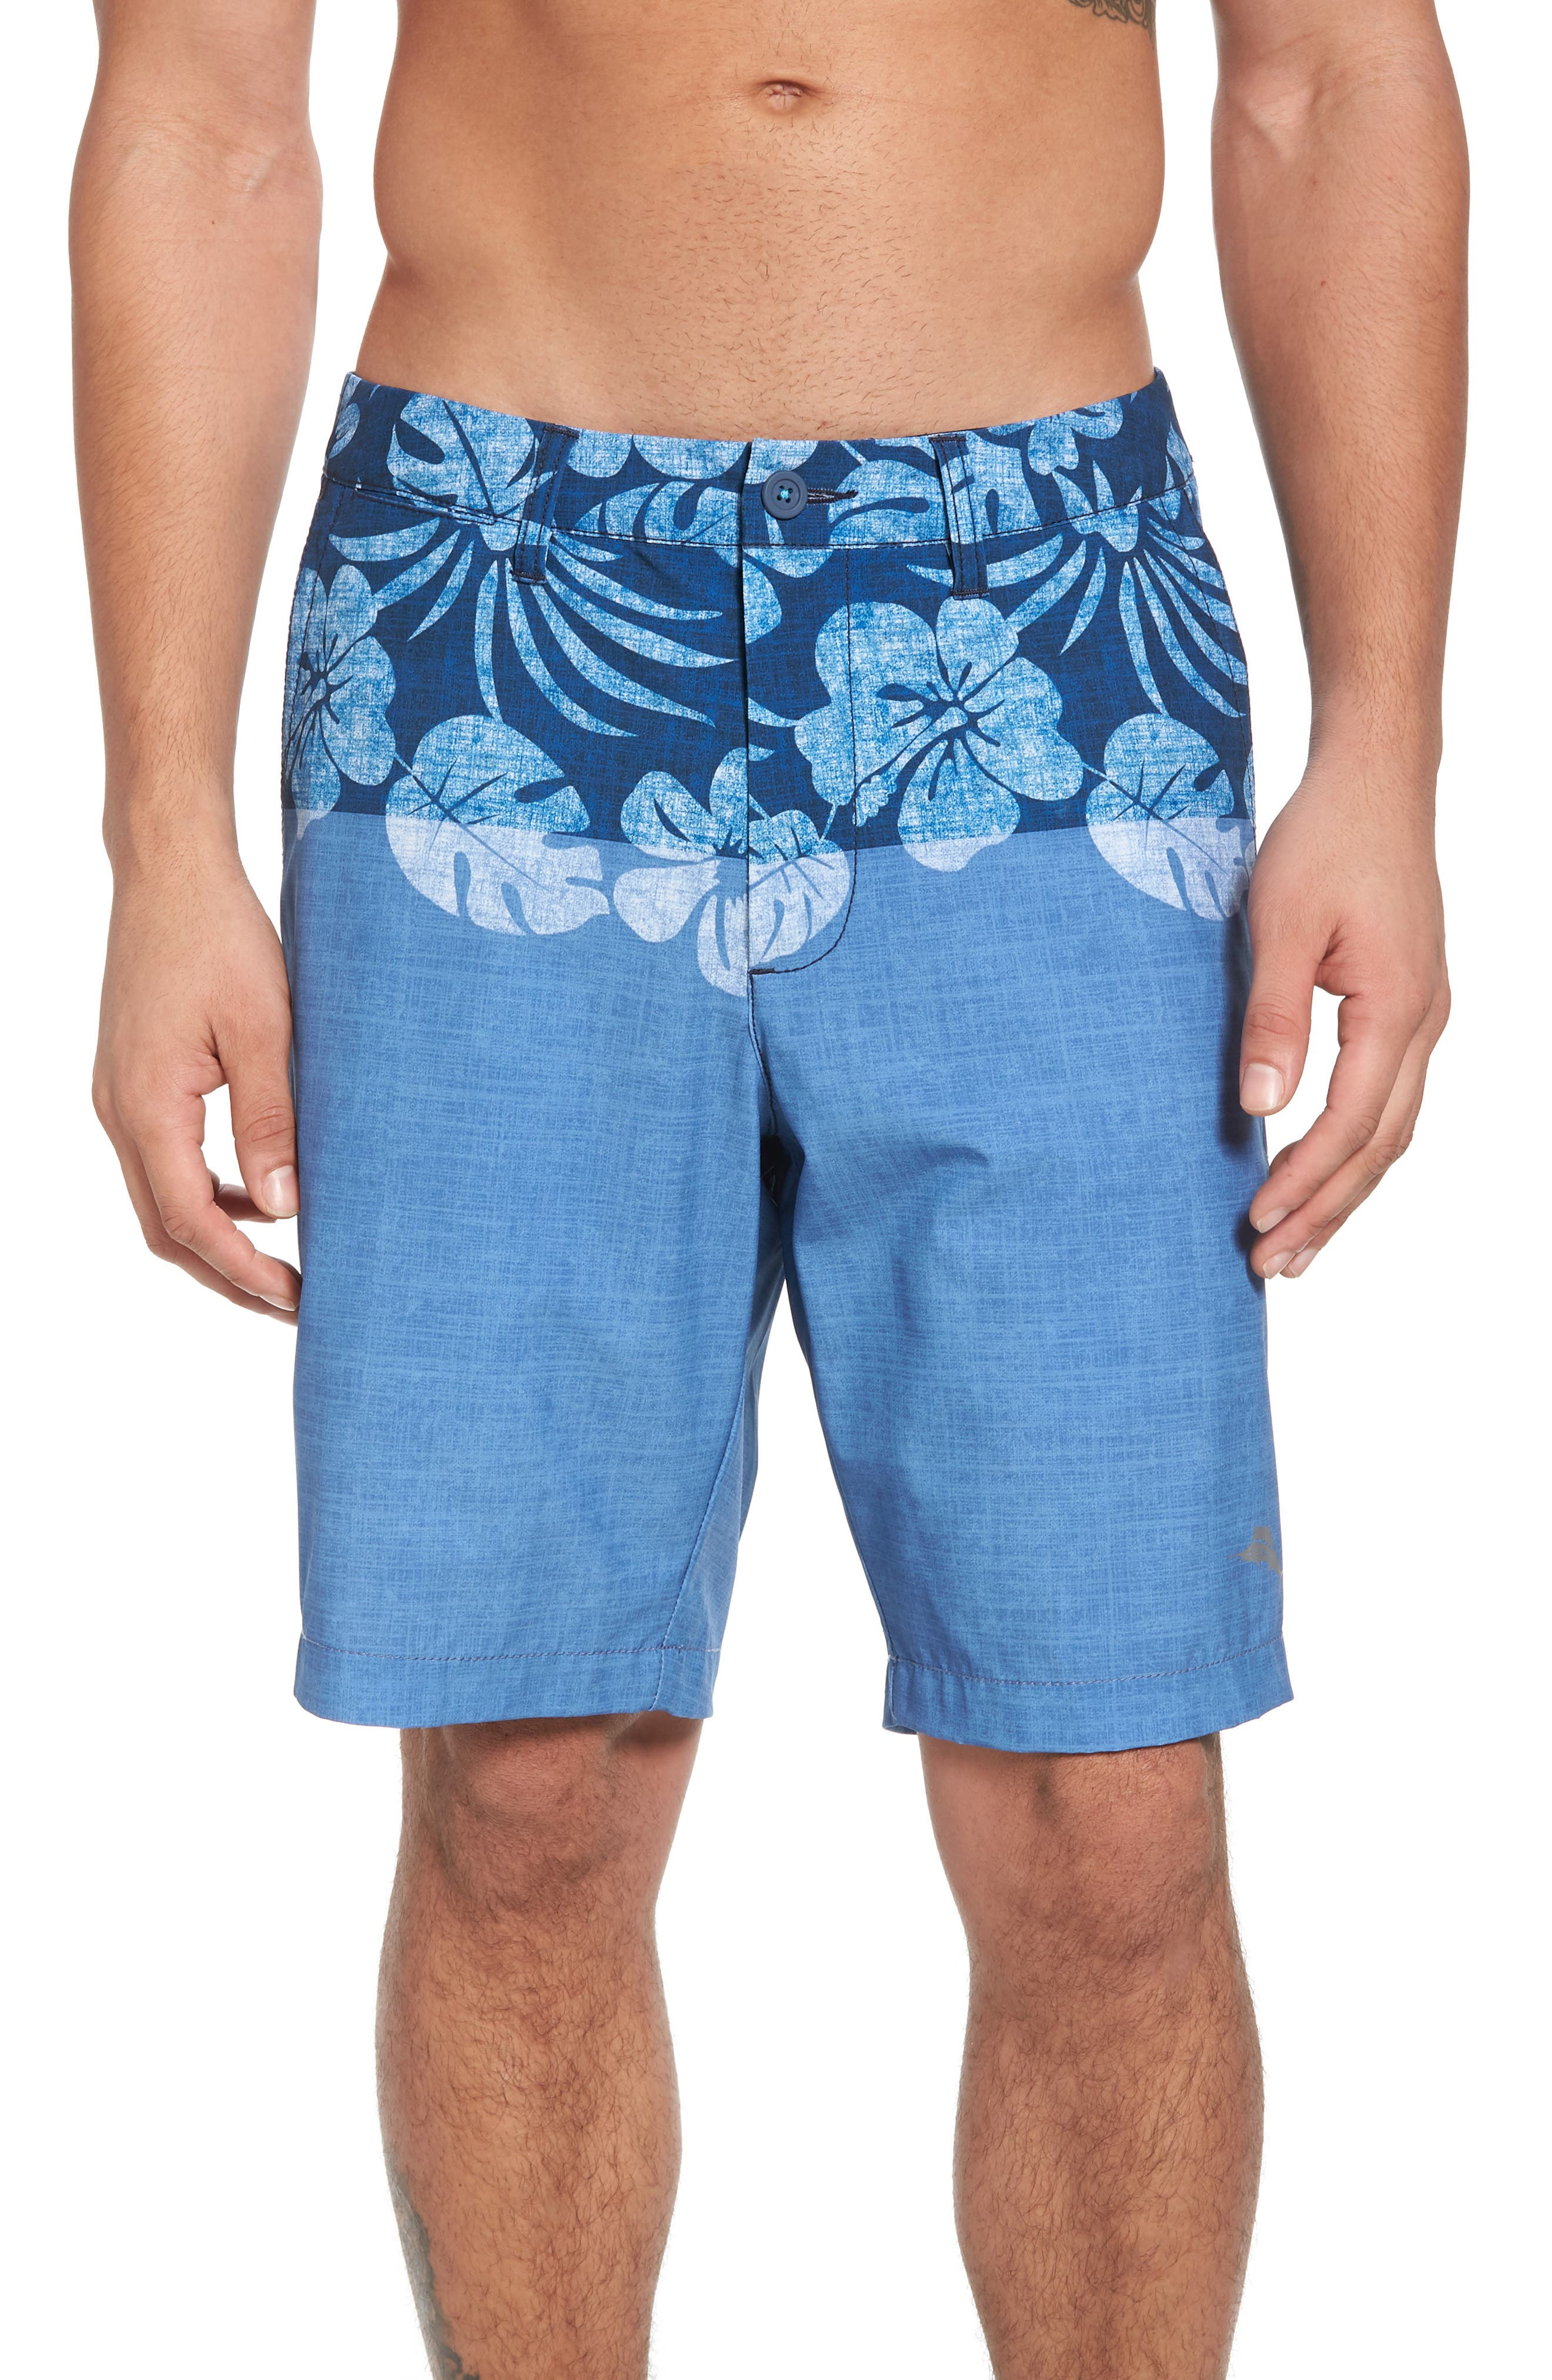 Cayman Waterline Hybrid Shorts,                             Main thumbnail 1, color,                             Dockside Blue